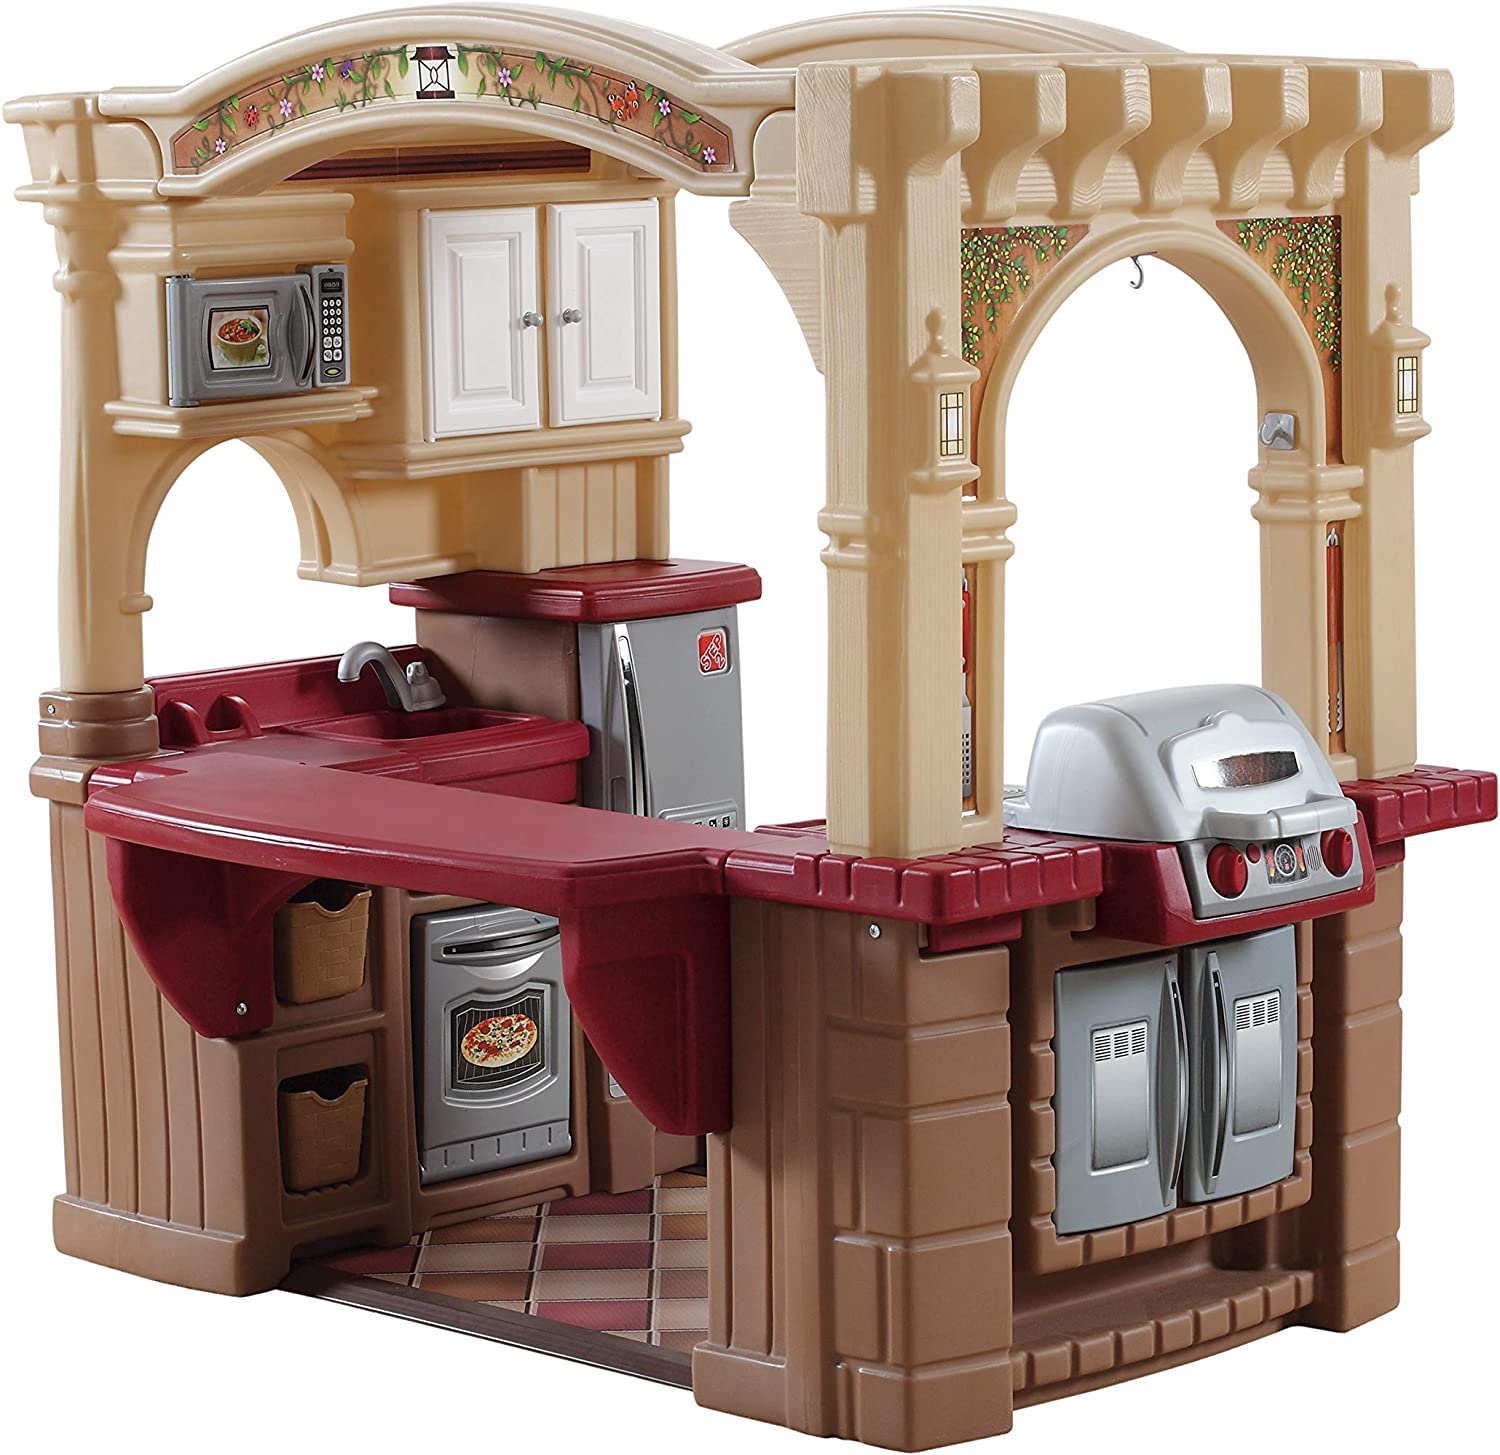 Amazon Com Step2 Grand Walk In Kitchen Grill Large Kids Kitchen Playset Toy Play Kitchen With 103 Pc Play Kitchen Accessories Set Included Brown Tan Maroon 821400 Toys Games